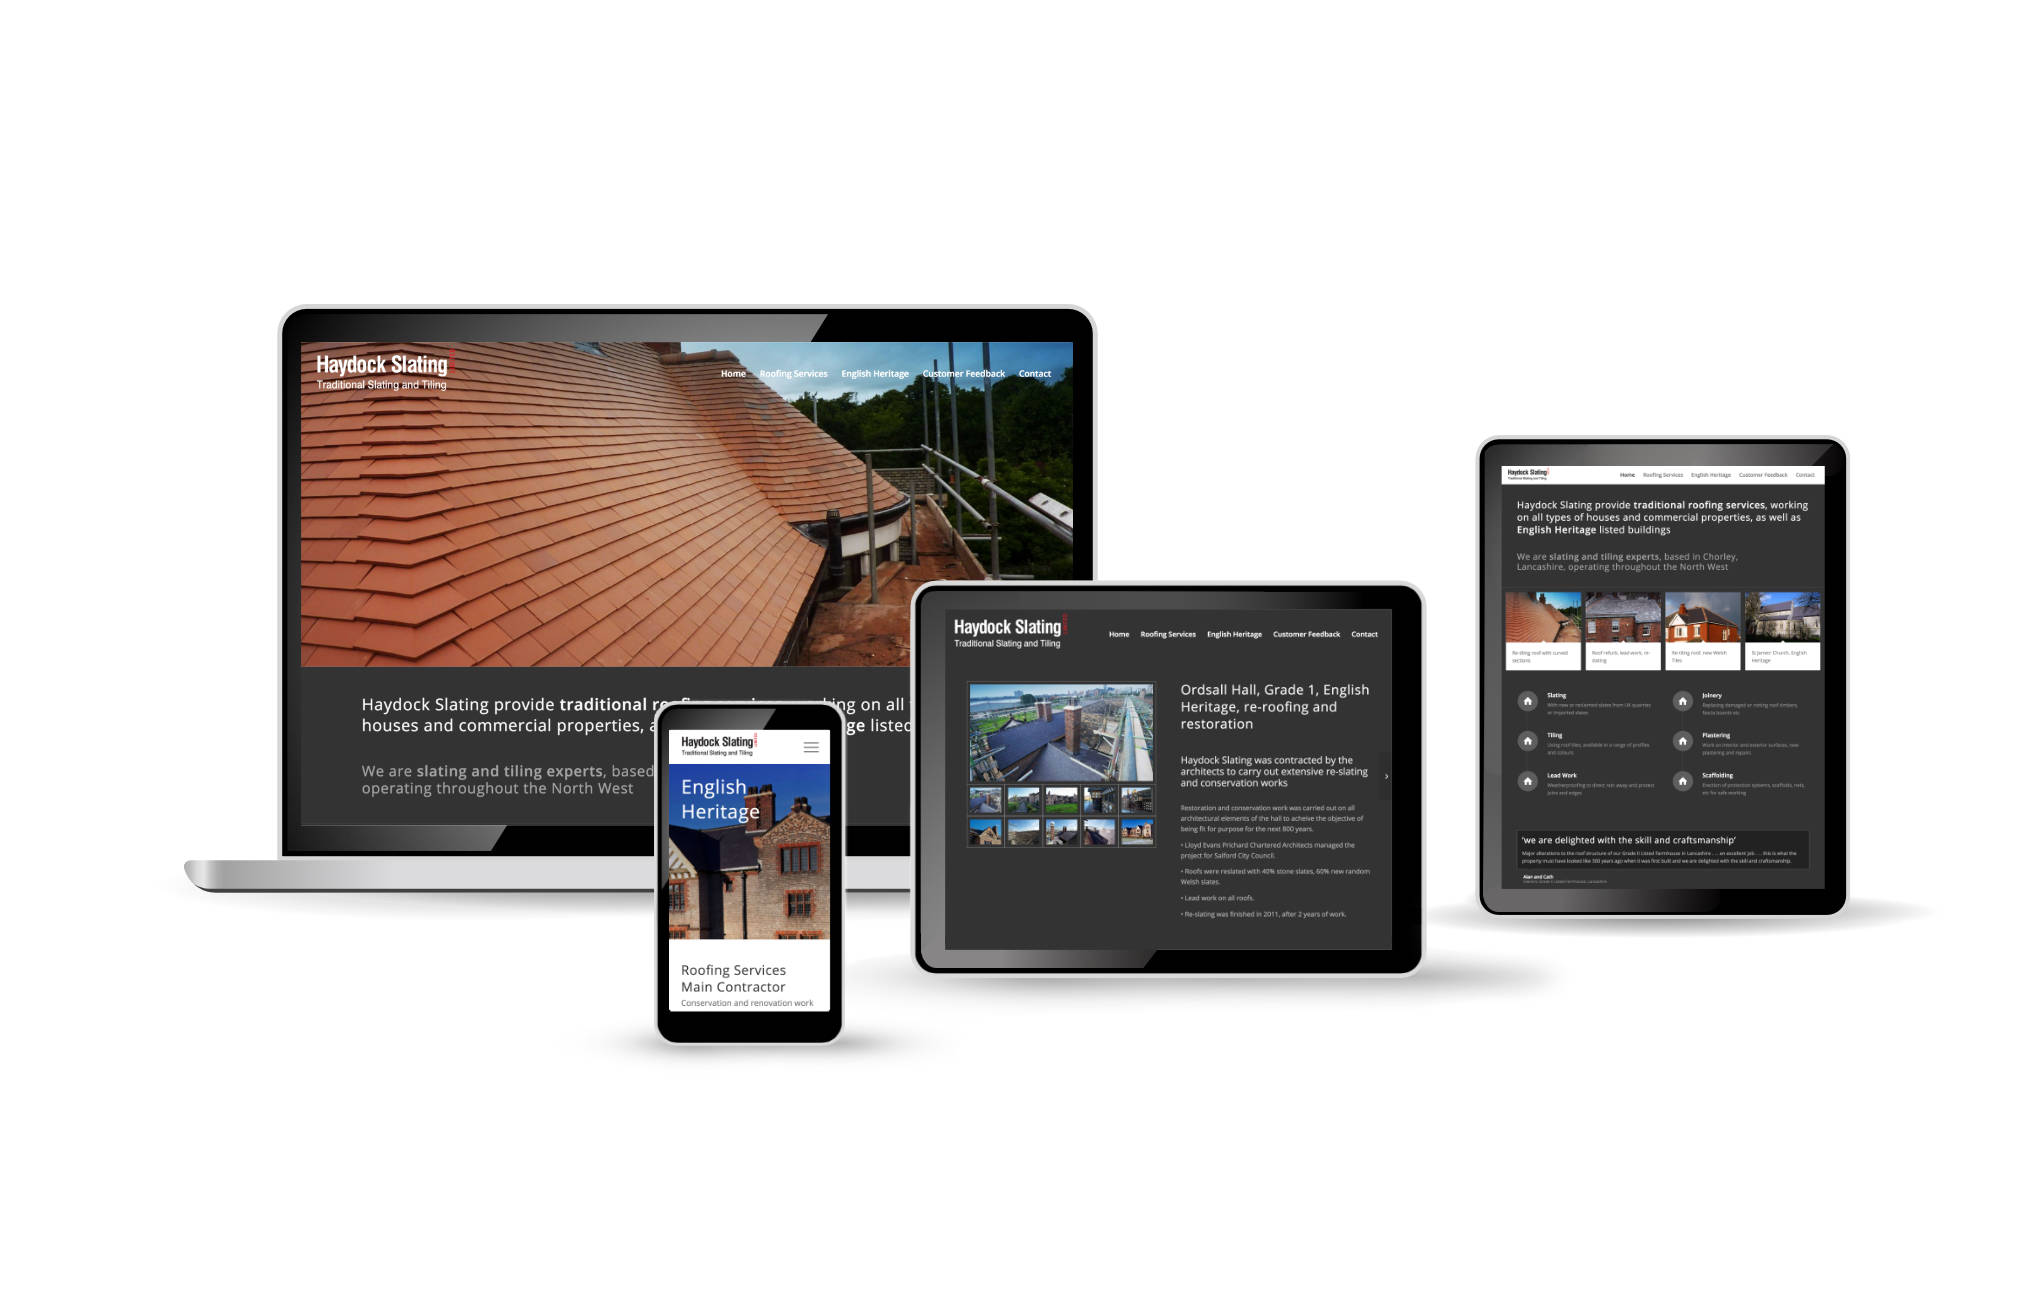 Roofing Contractor, Haydock Slating, website design by Orangebox